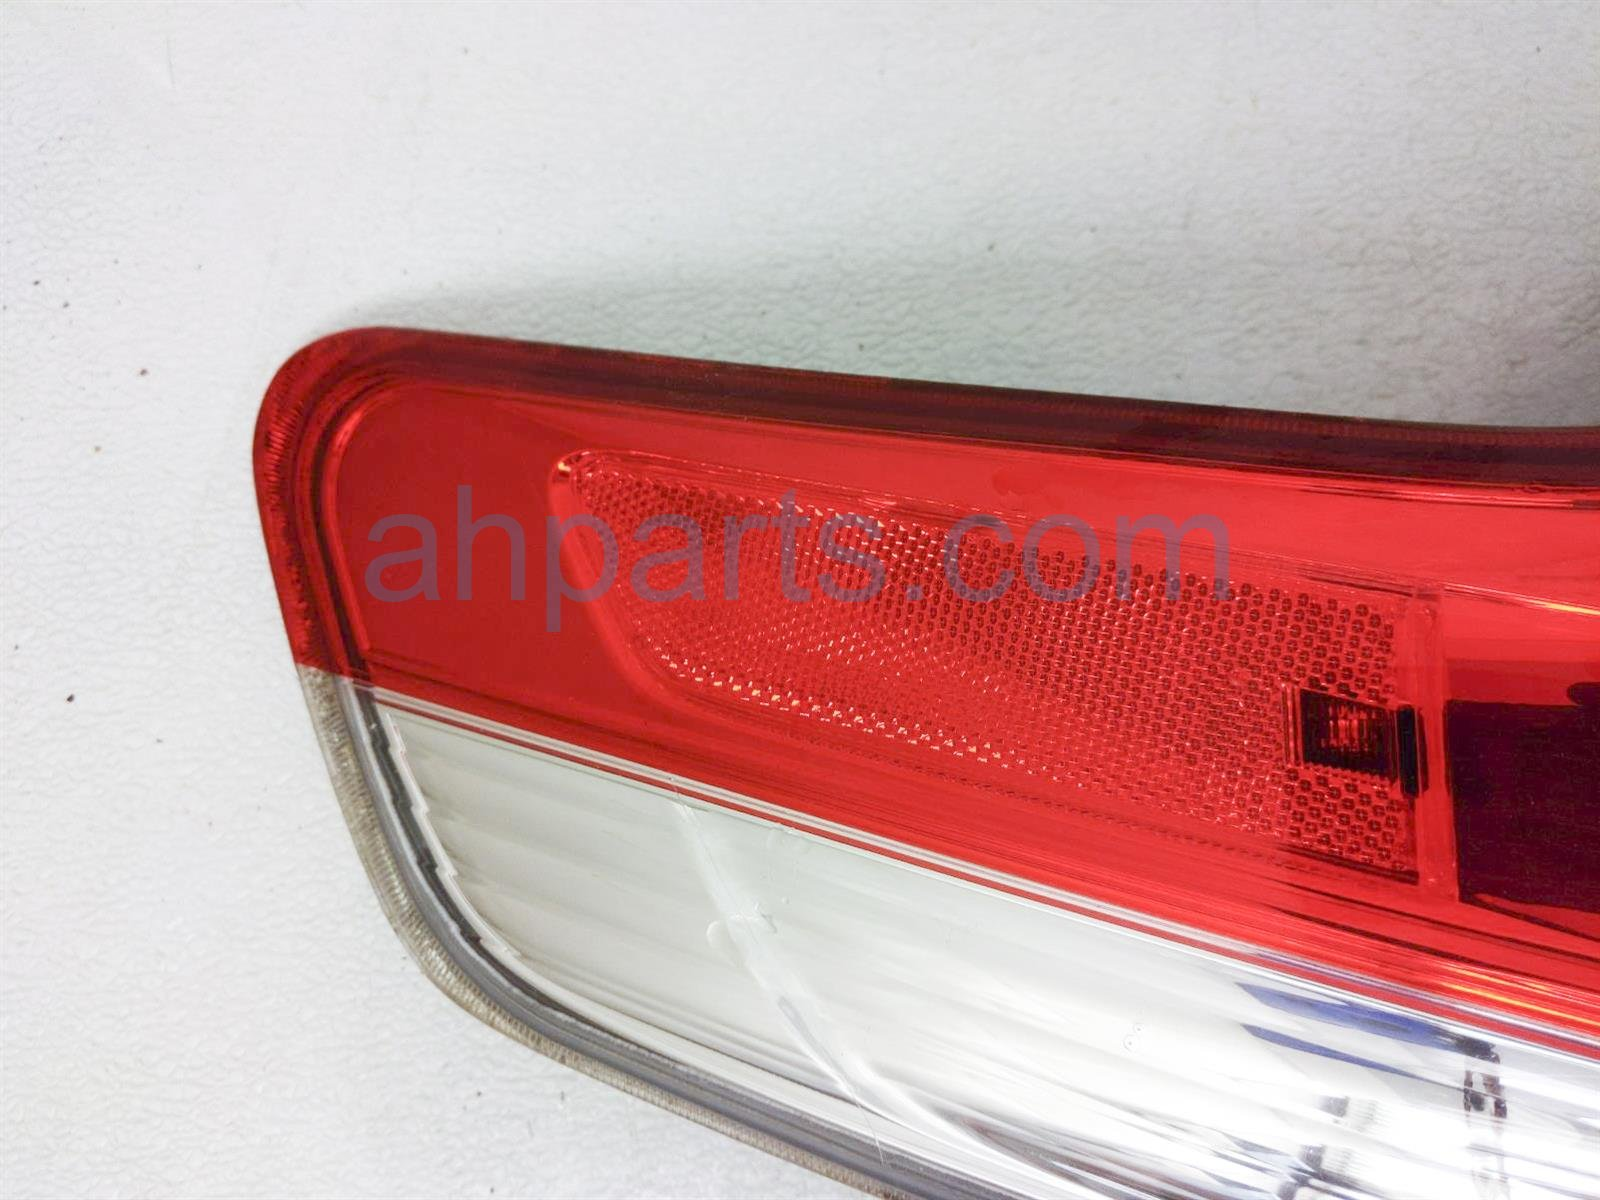 2013 Toyota Sienna Light / Rear Driver Tail Lamp (on Body) 81560 08030 Replacement